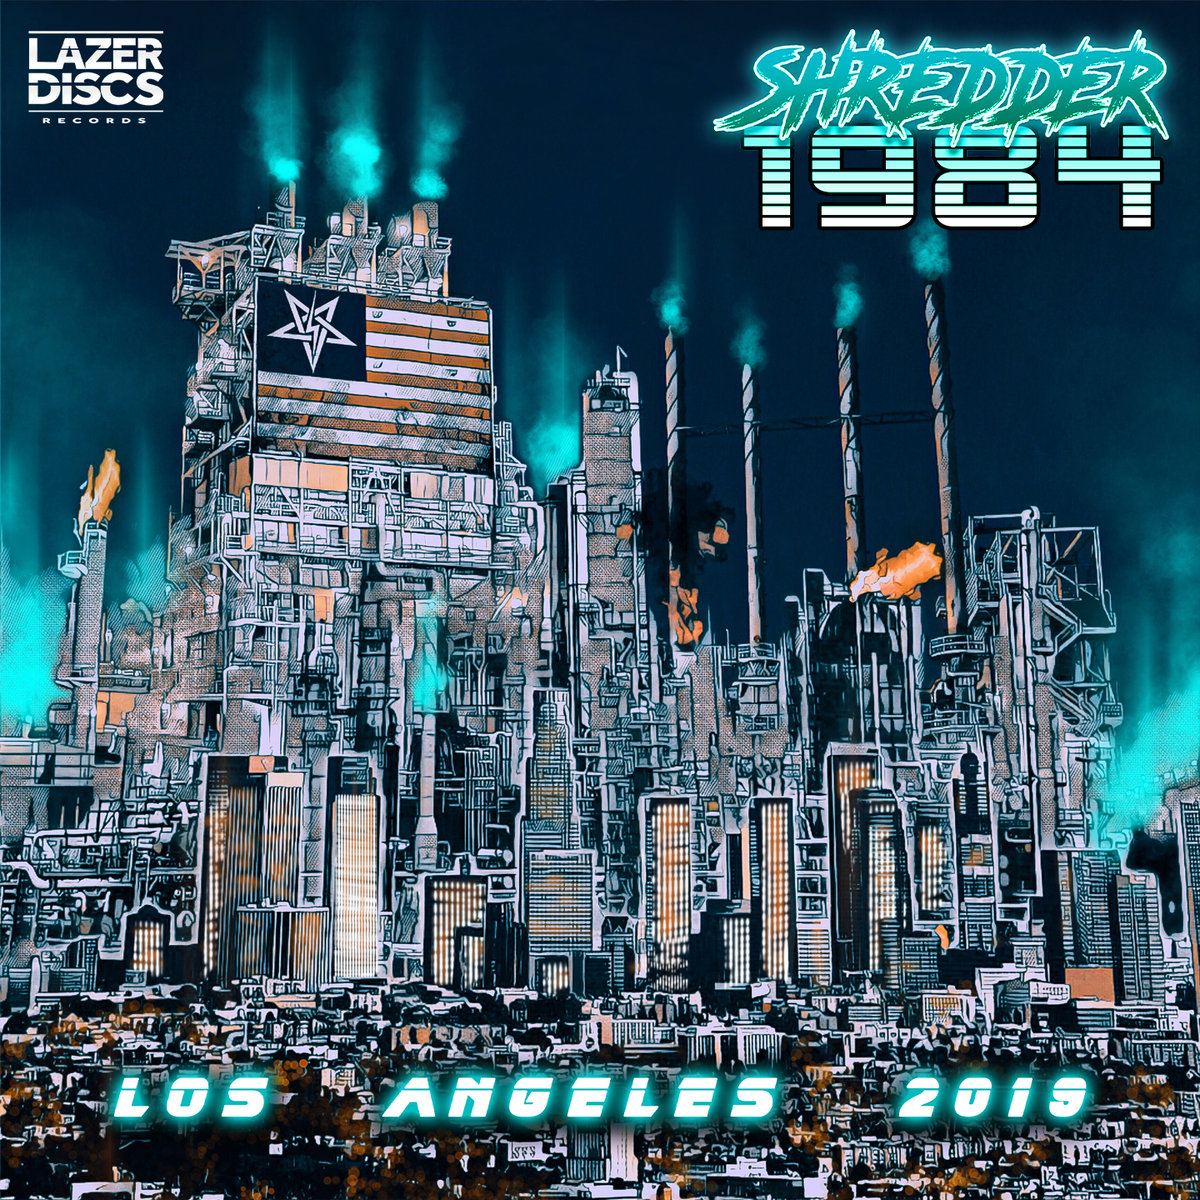 Shredder 1984 - Los Angeles 2019